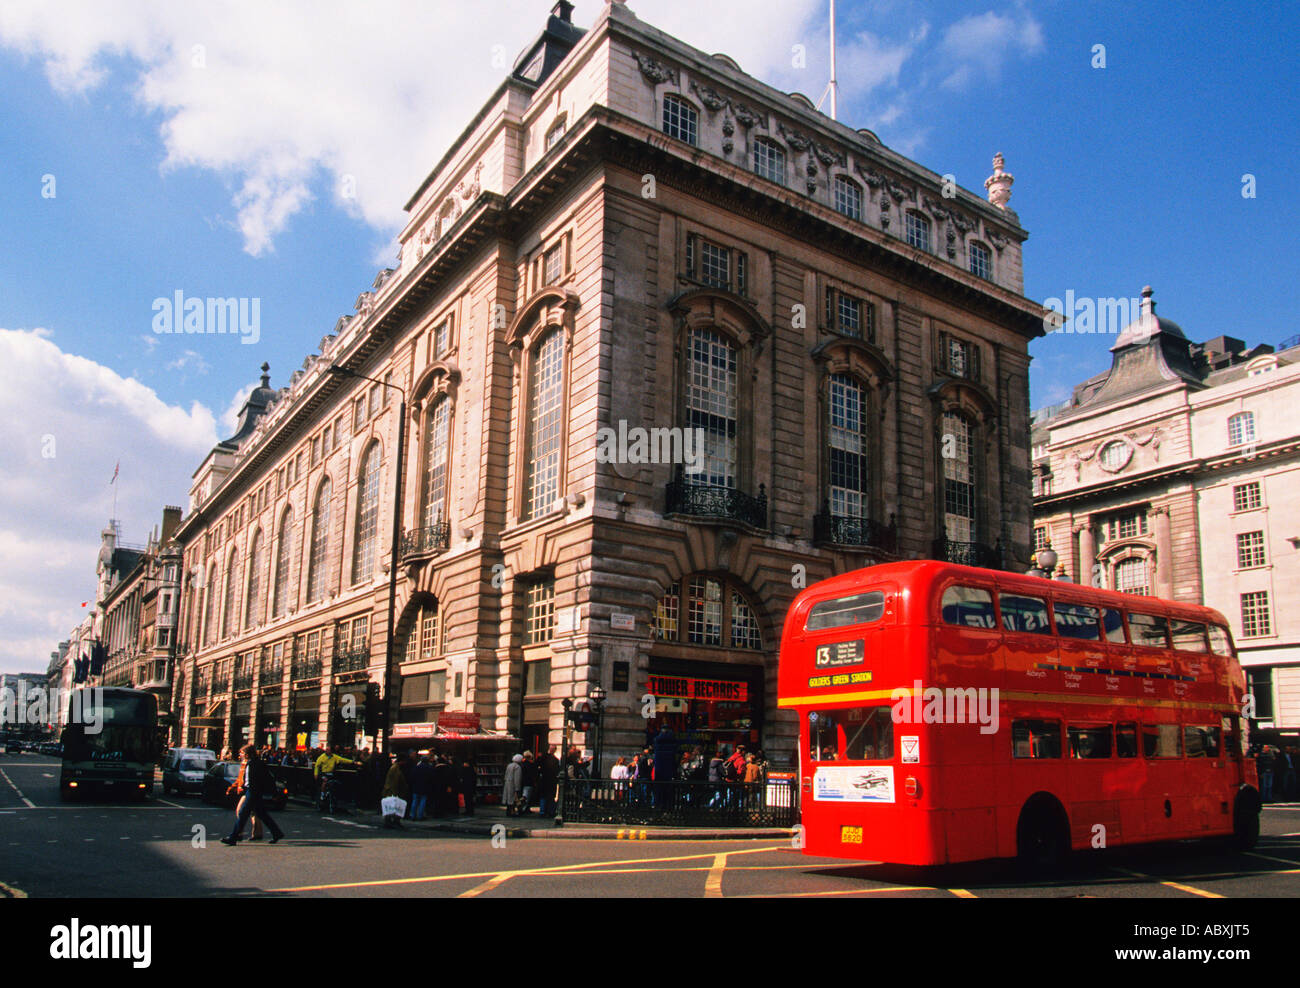 Europe England Great Britain United Kingdom London Piccadilly Circus Double Decker Bus - Stock Image